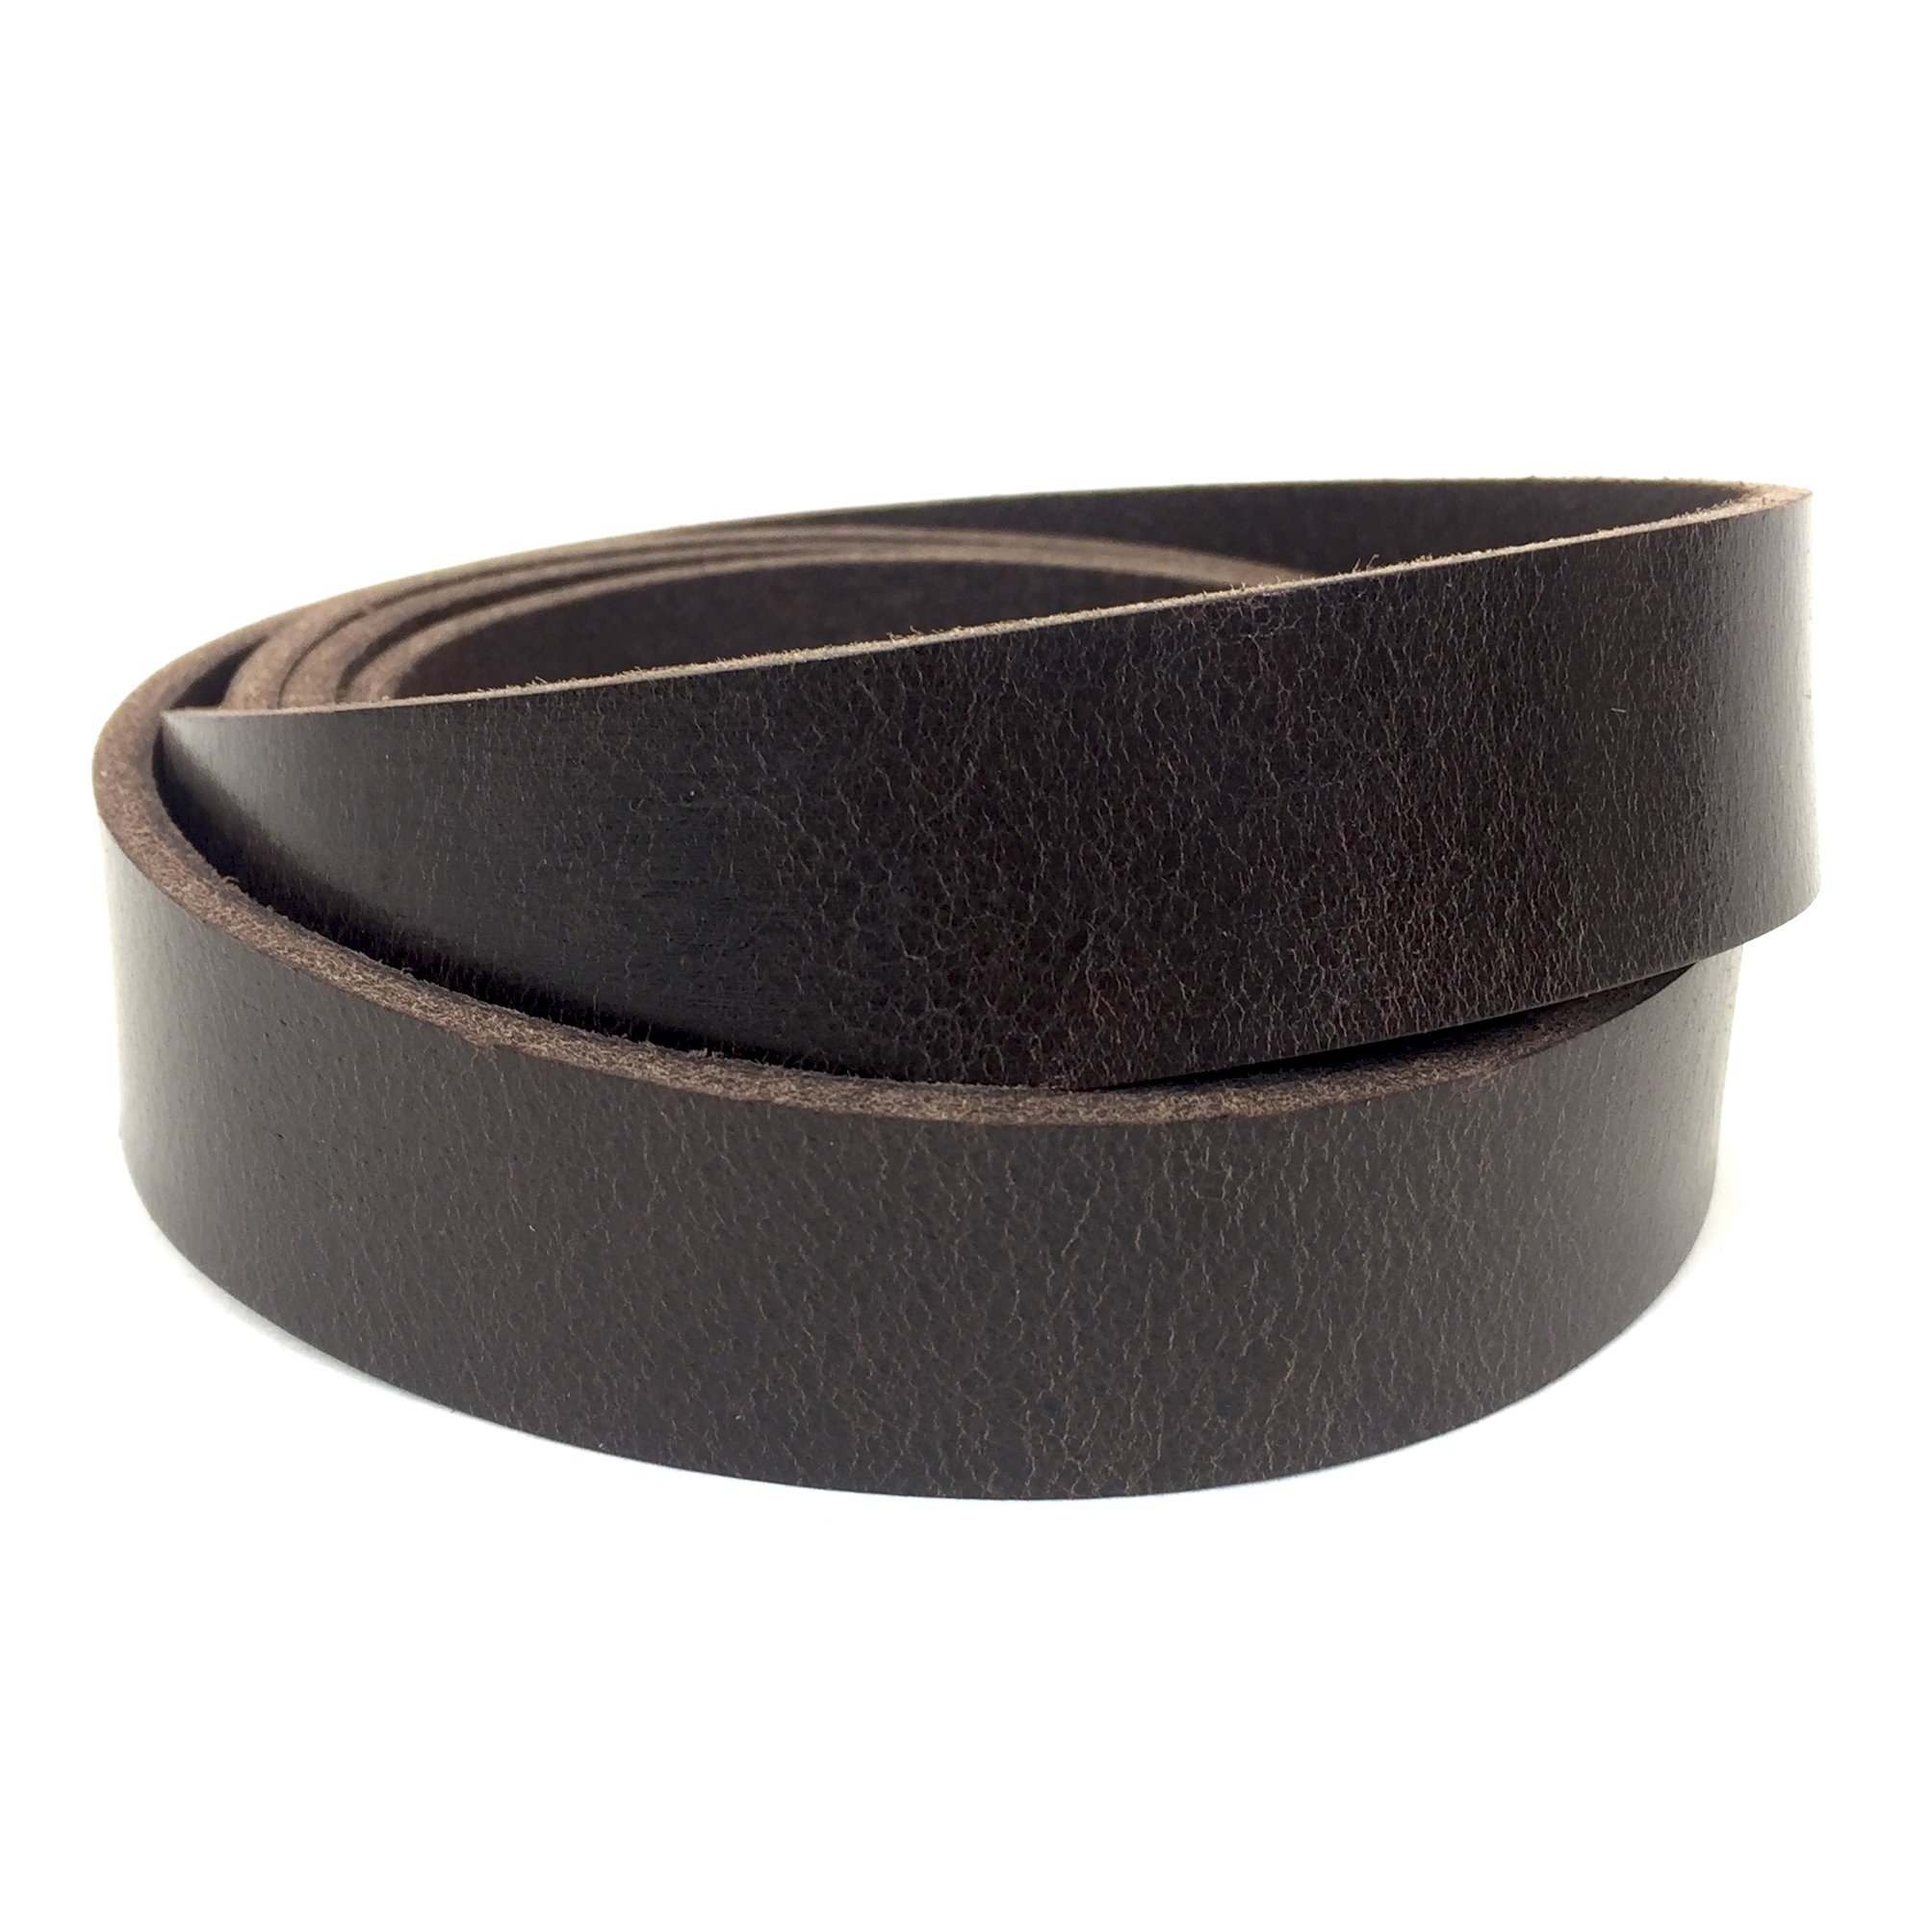 "Springfield Leather Company's Buffalo Leather Strips (1"", Brown)"